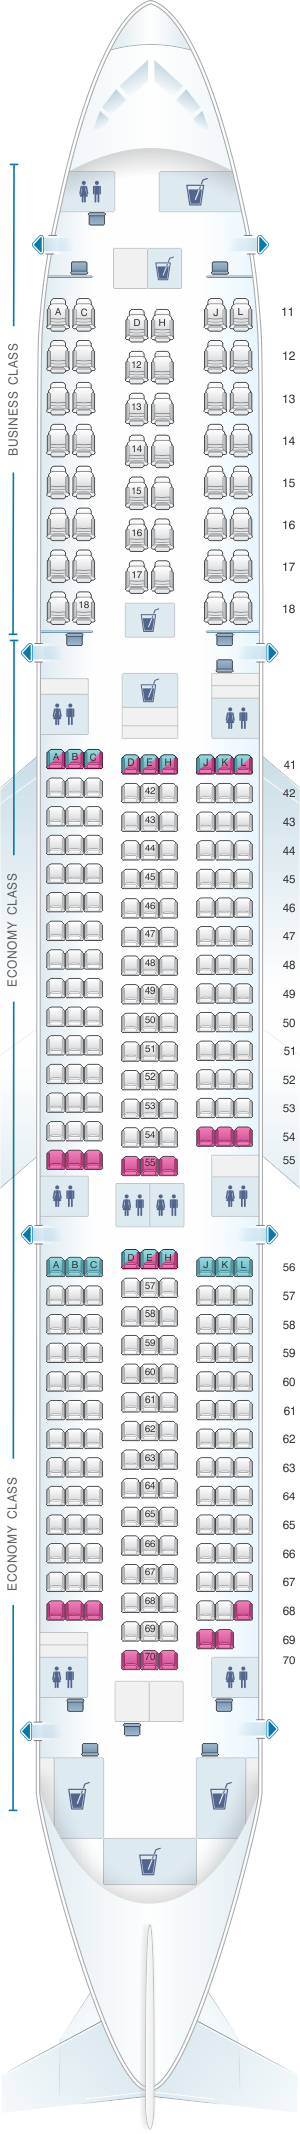 Seat map for Xiamen Airlines Boeing B787-9